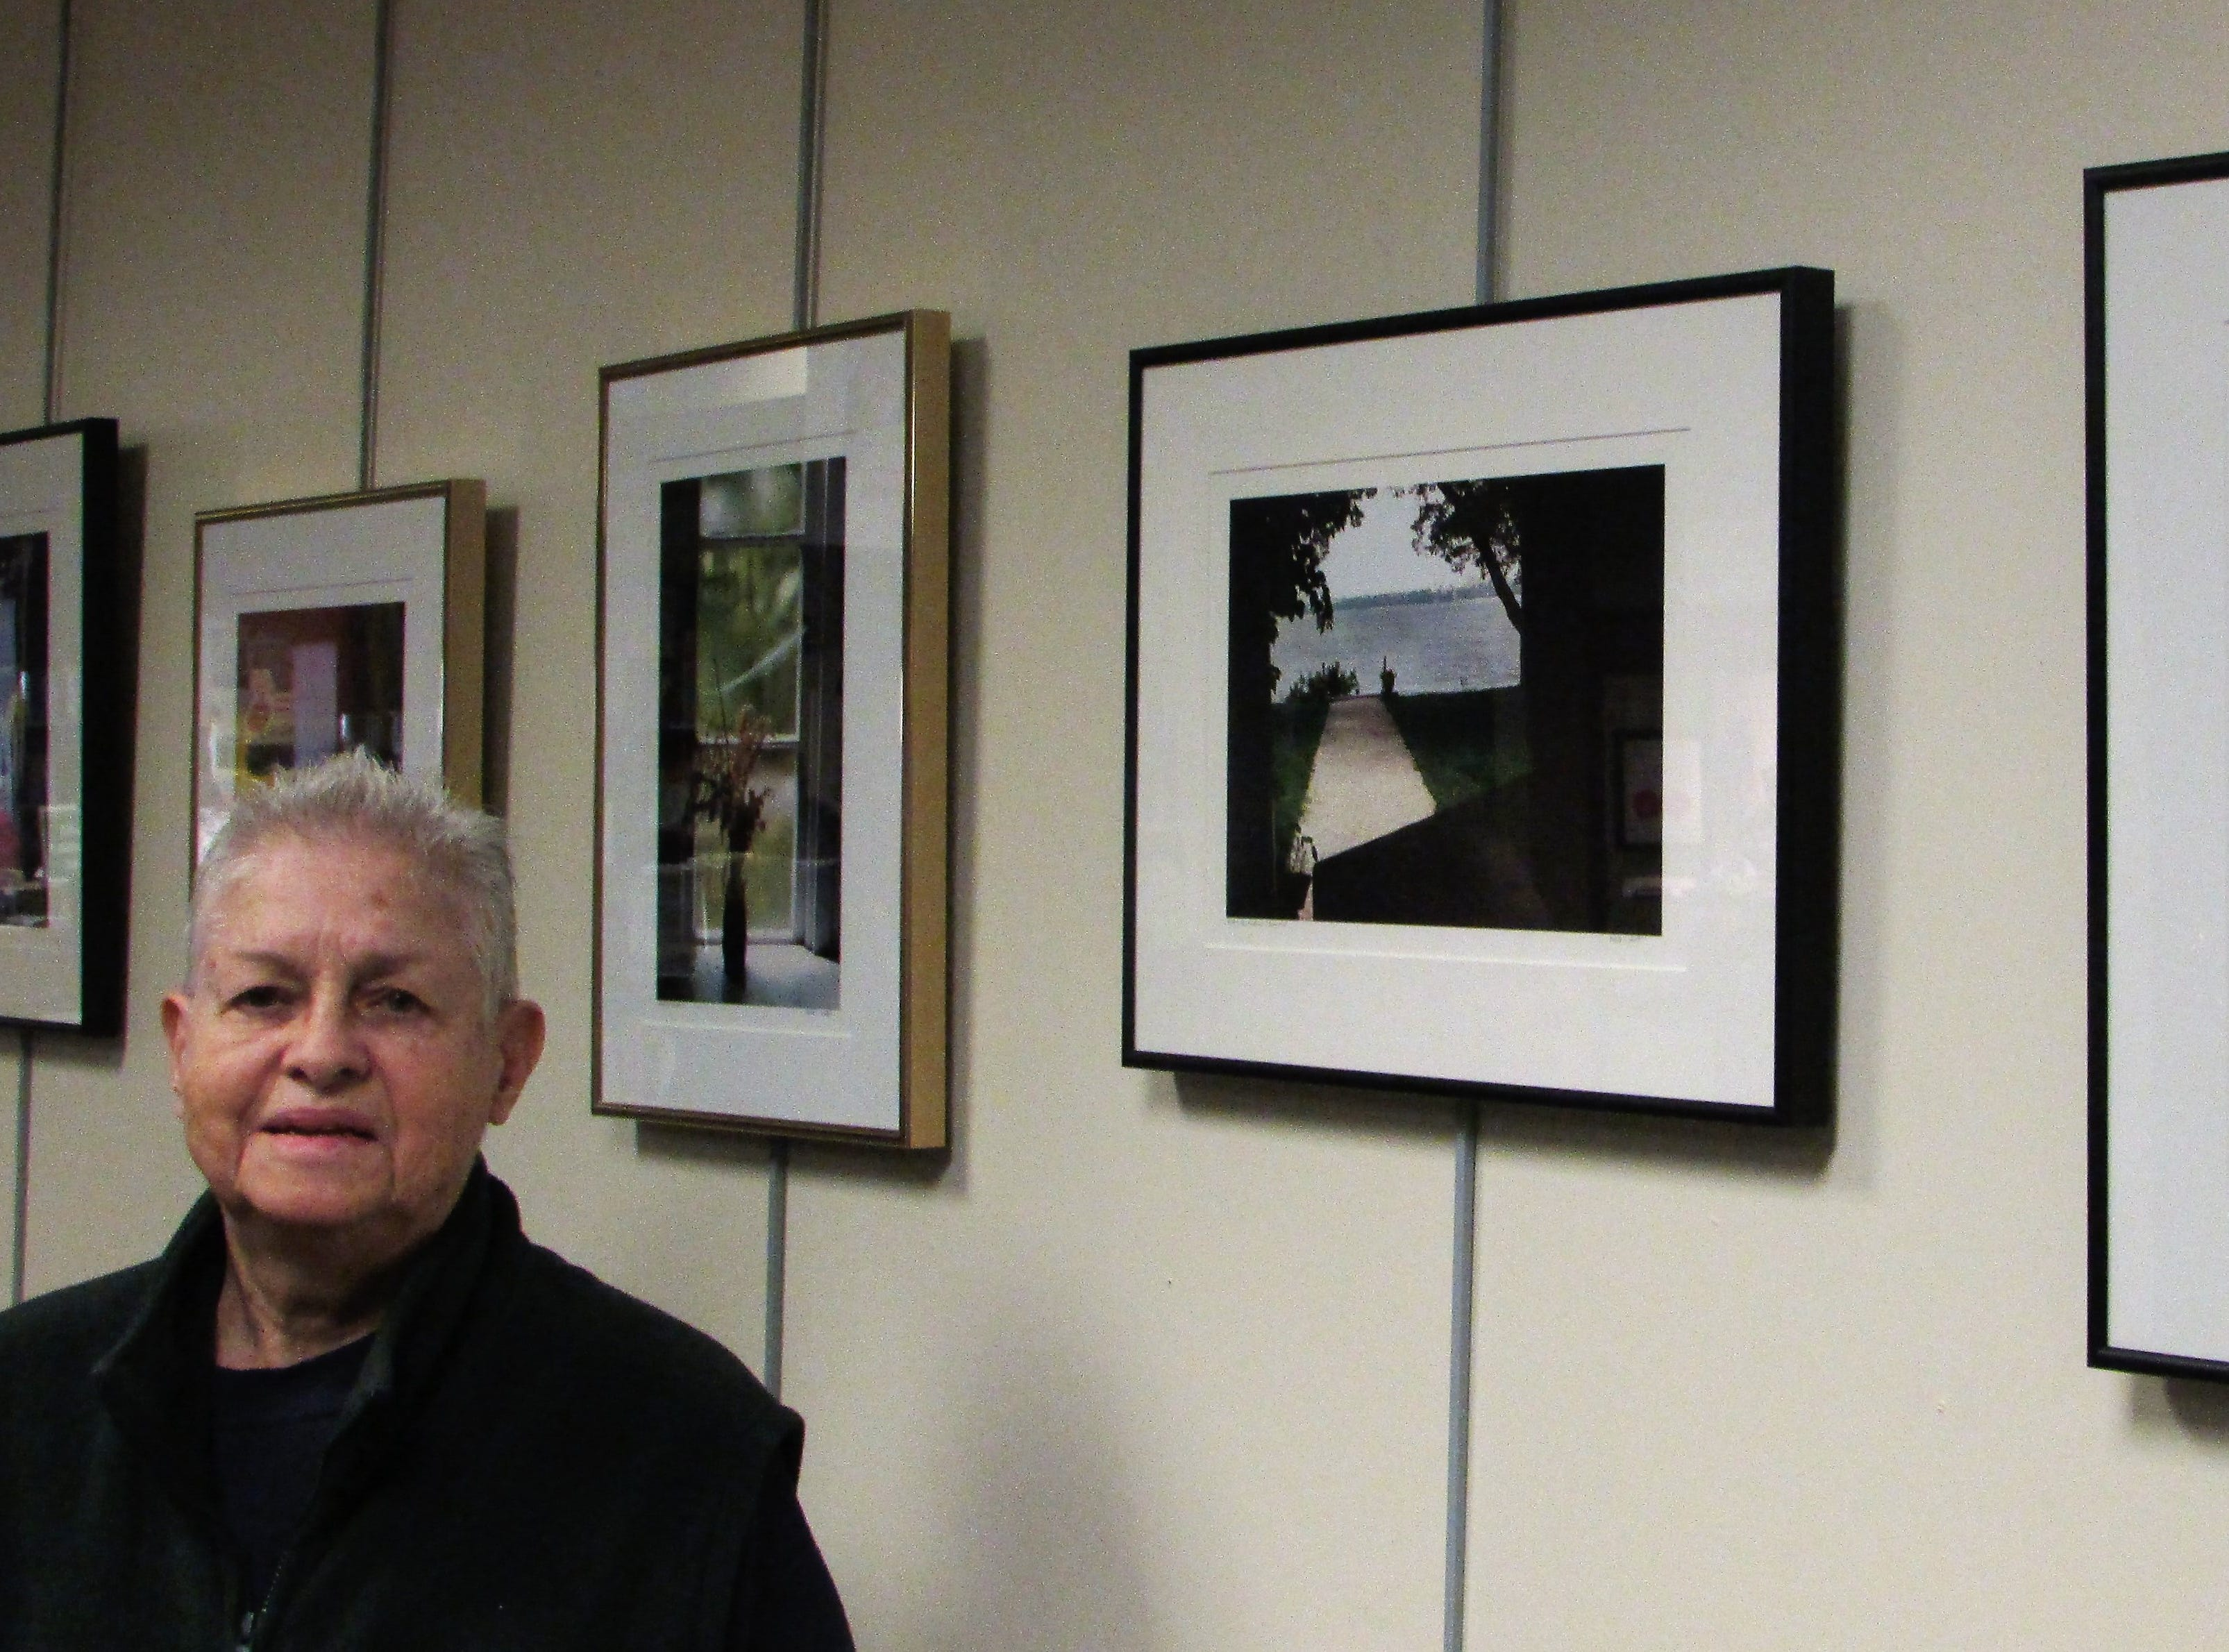 A collection of photography as seen through the lens of award-winning New Jersey photographer Roberta C. Scott is currently on display in the Art Space at the Somerset County Library System of New Jersey's (SCLSNJ) Warren Township Library branch. The exhibition will be available to the public during normal Library hours through Wednesday, Feb. 6.